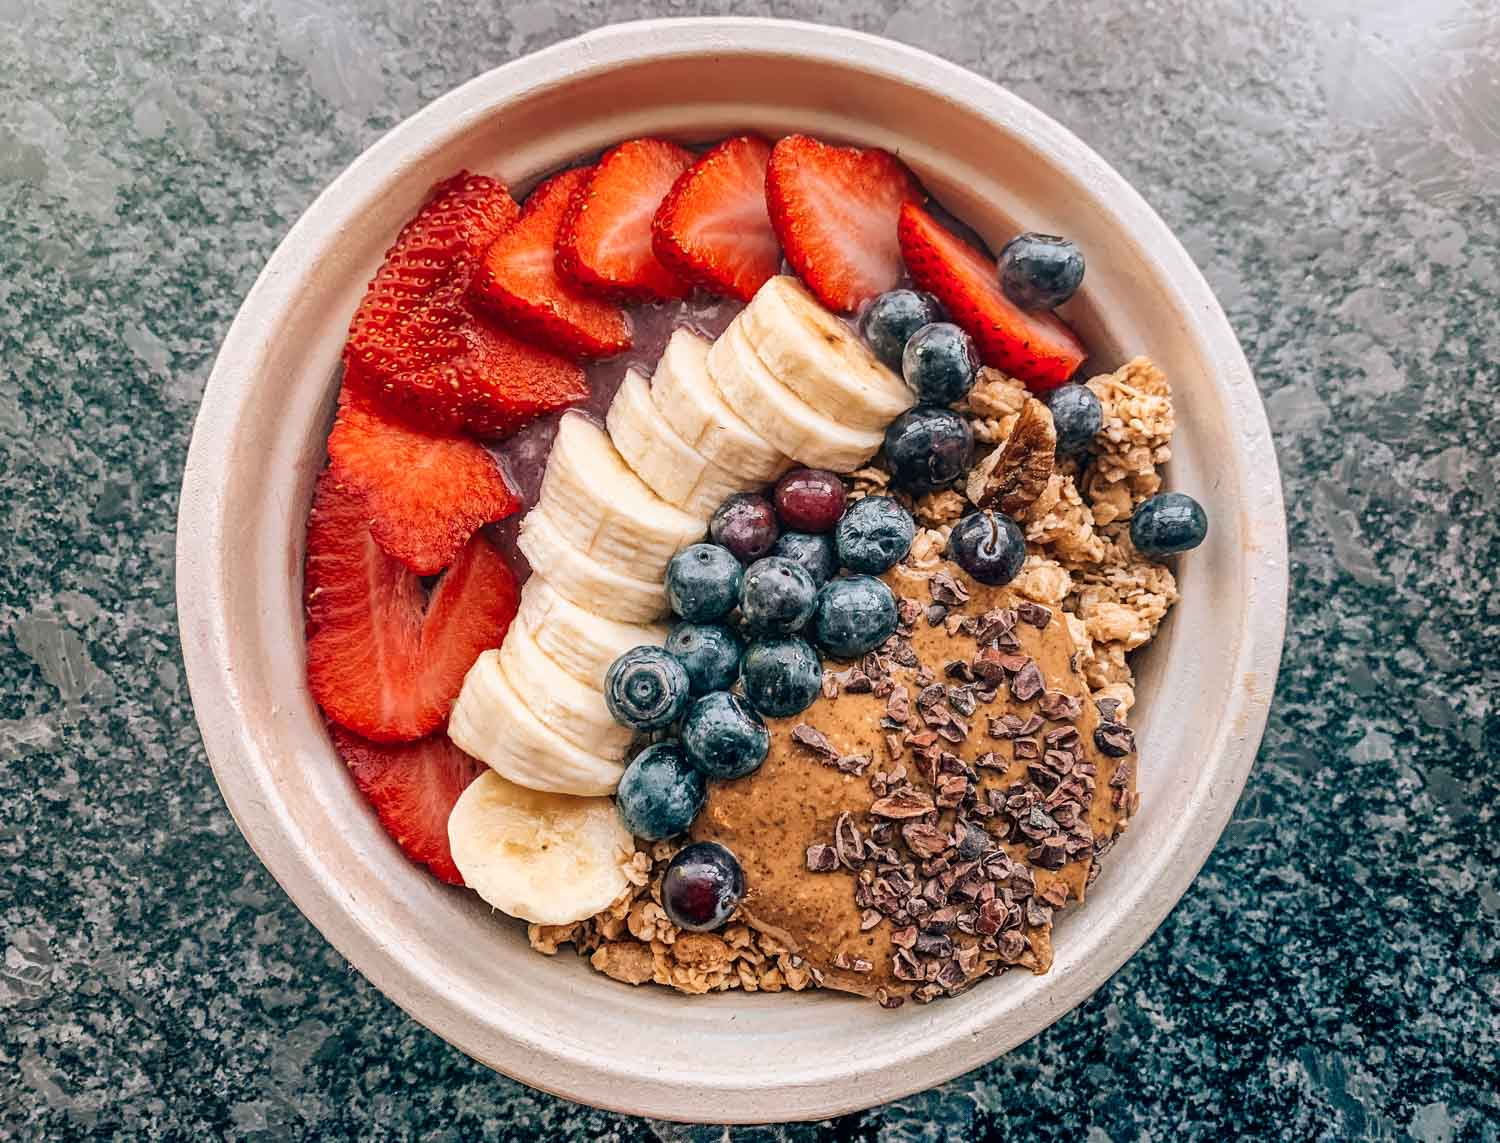 Acai bowl with strawberries, blueberries, banana, peanut butter, and granola at The Juicery in Portsmouth New Hampshire